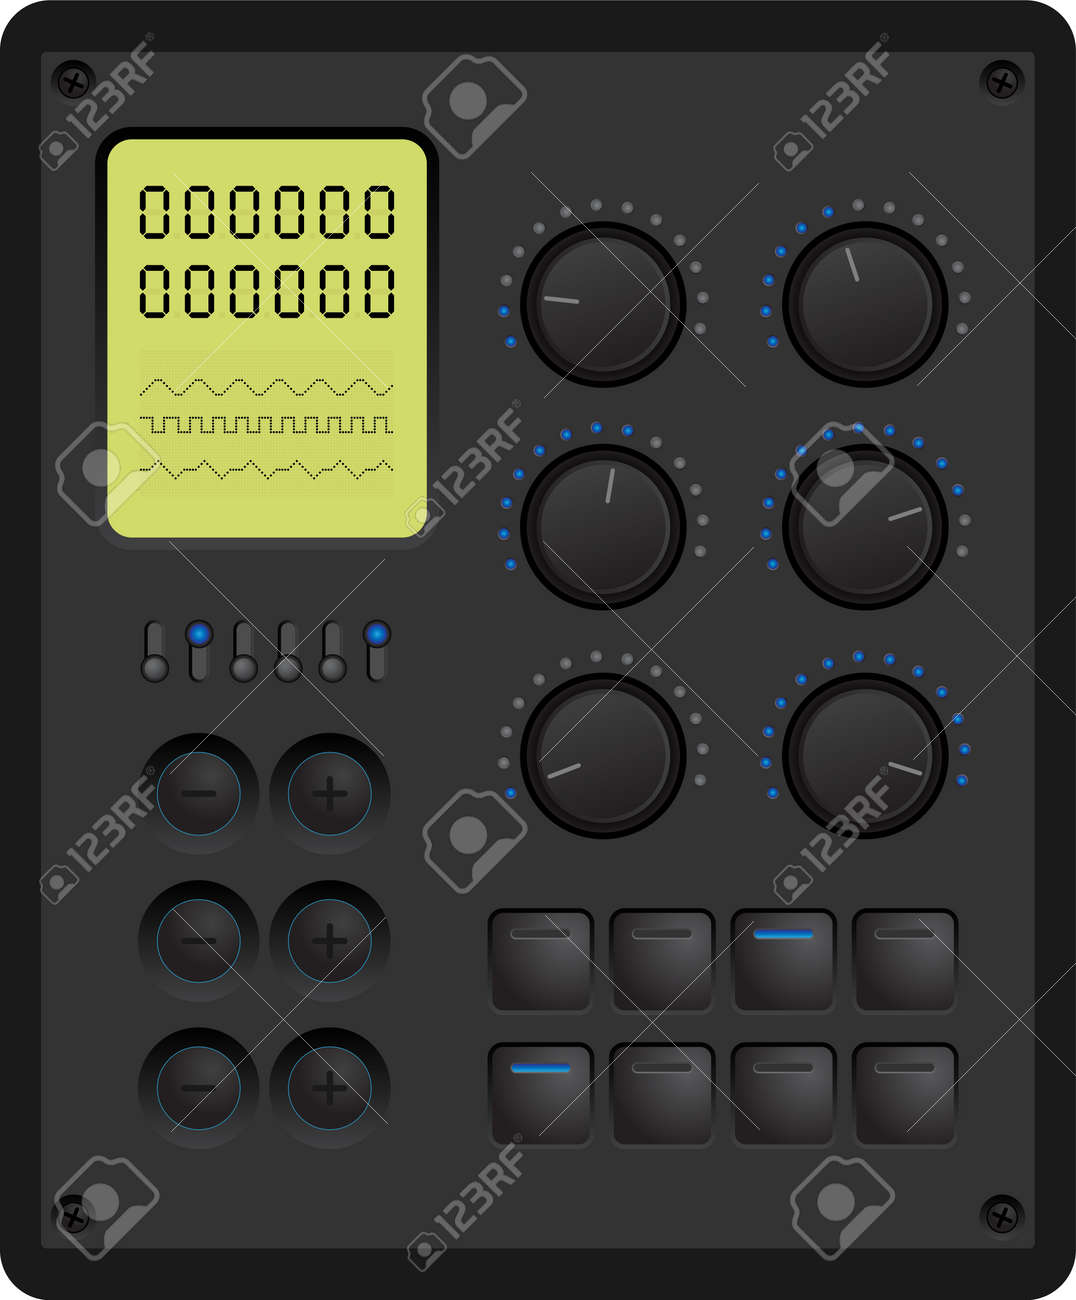 Vector illustration of a control panel for a digital device - 33845189